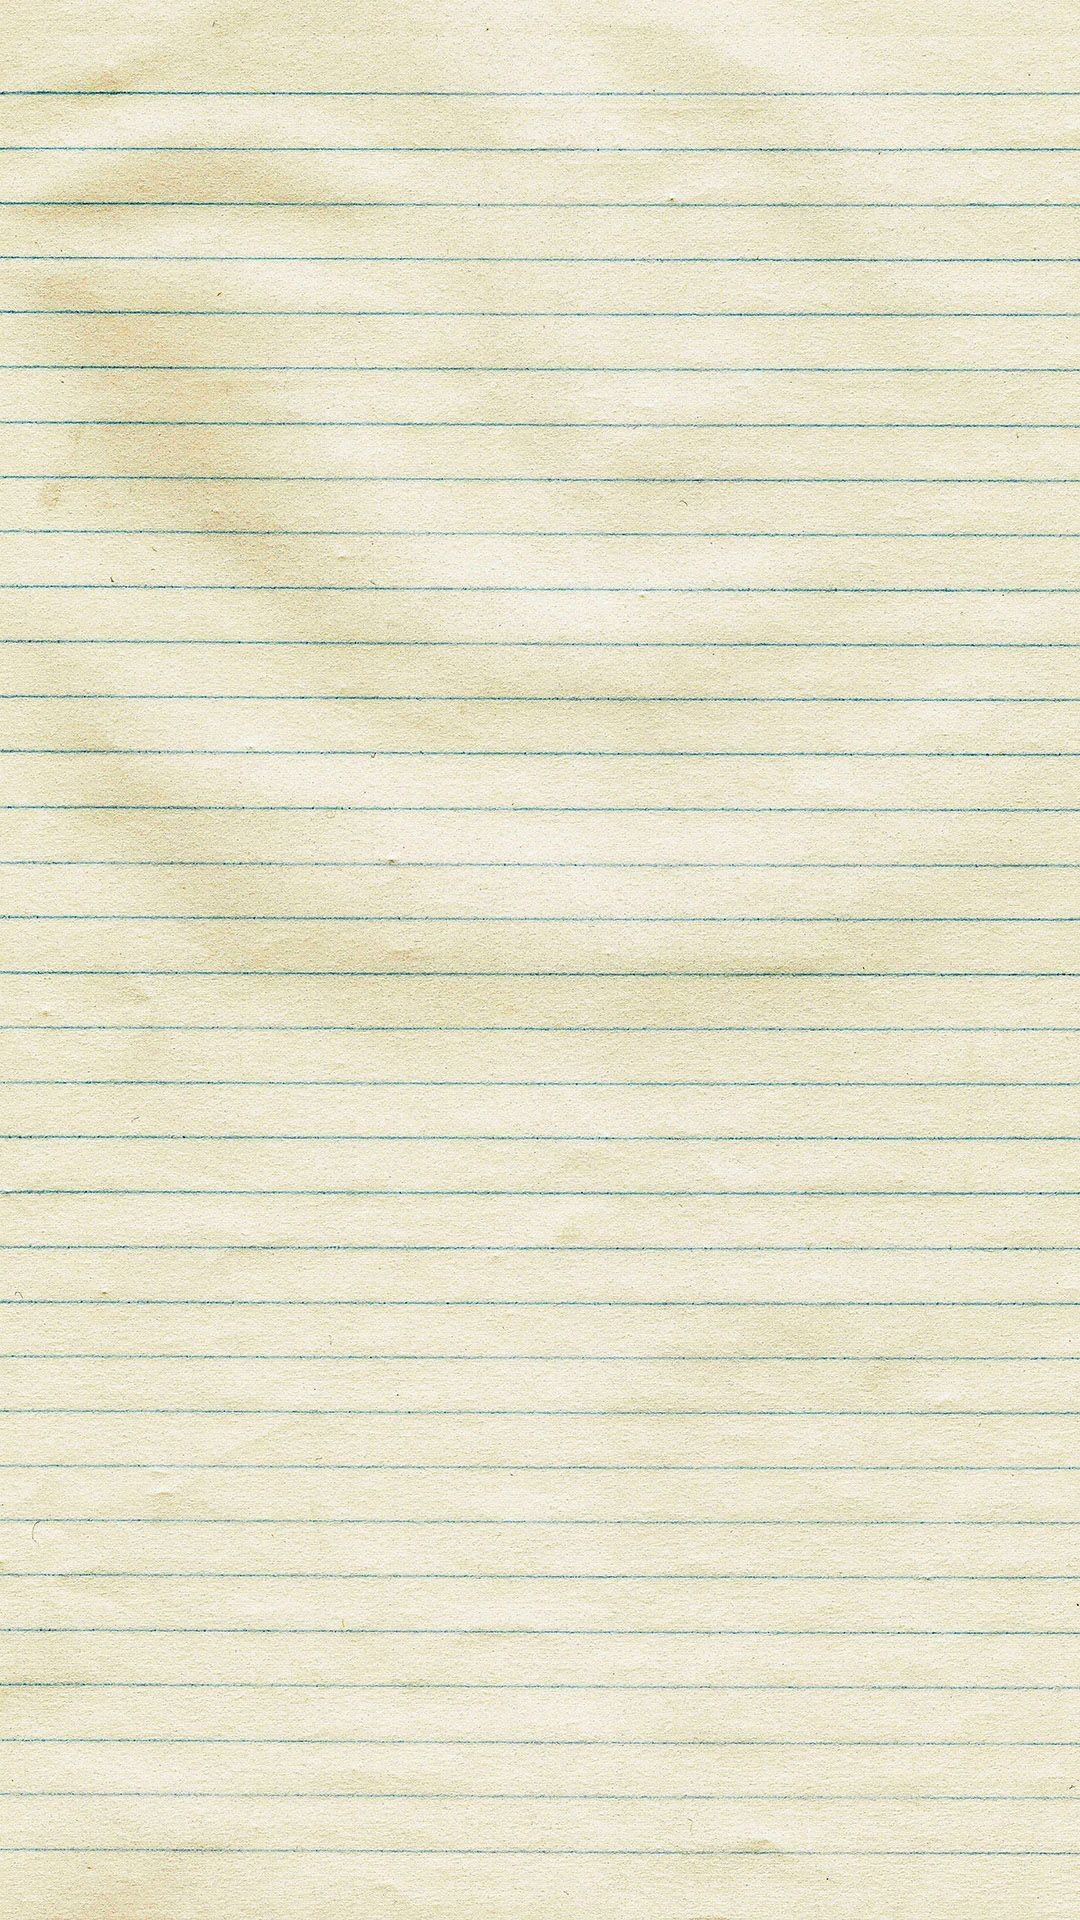 Notebook paper. Collection of Texture Backgrounds for iPhone – @mobile9  #texture #materials